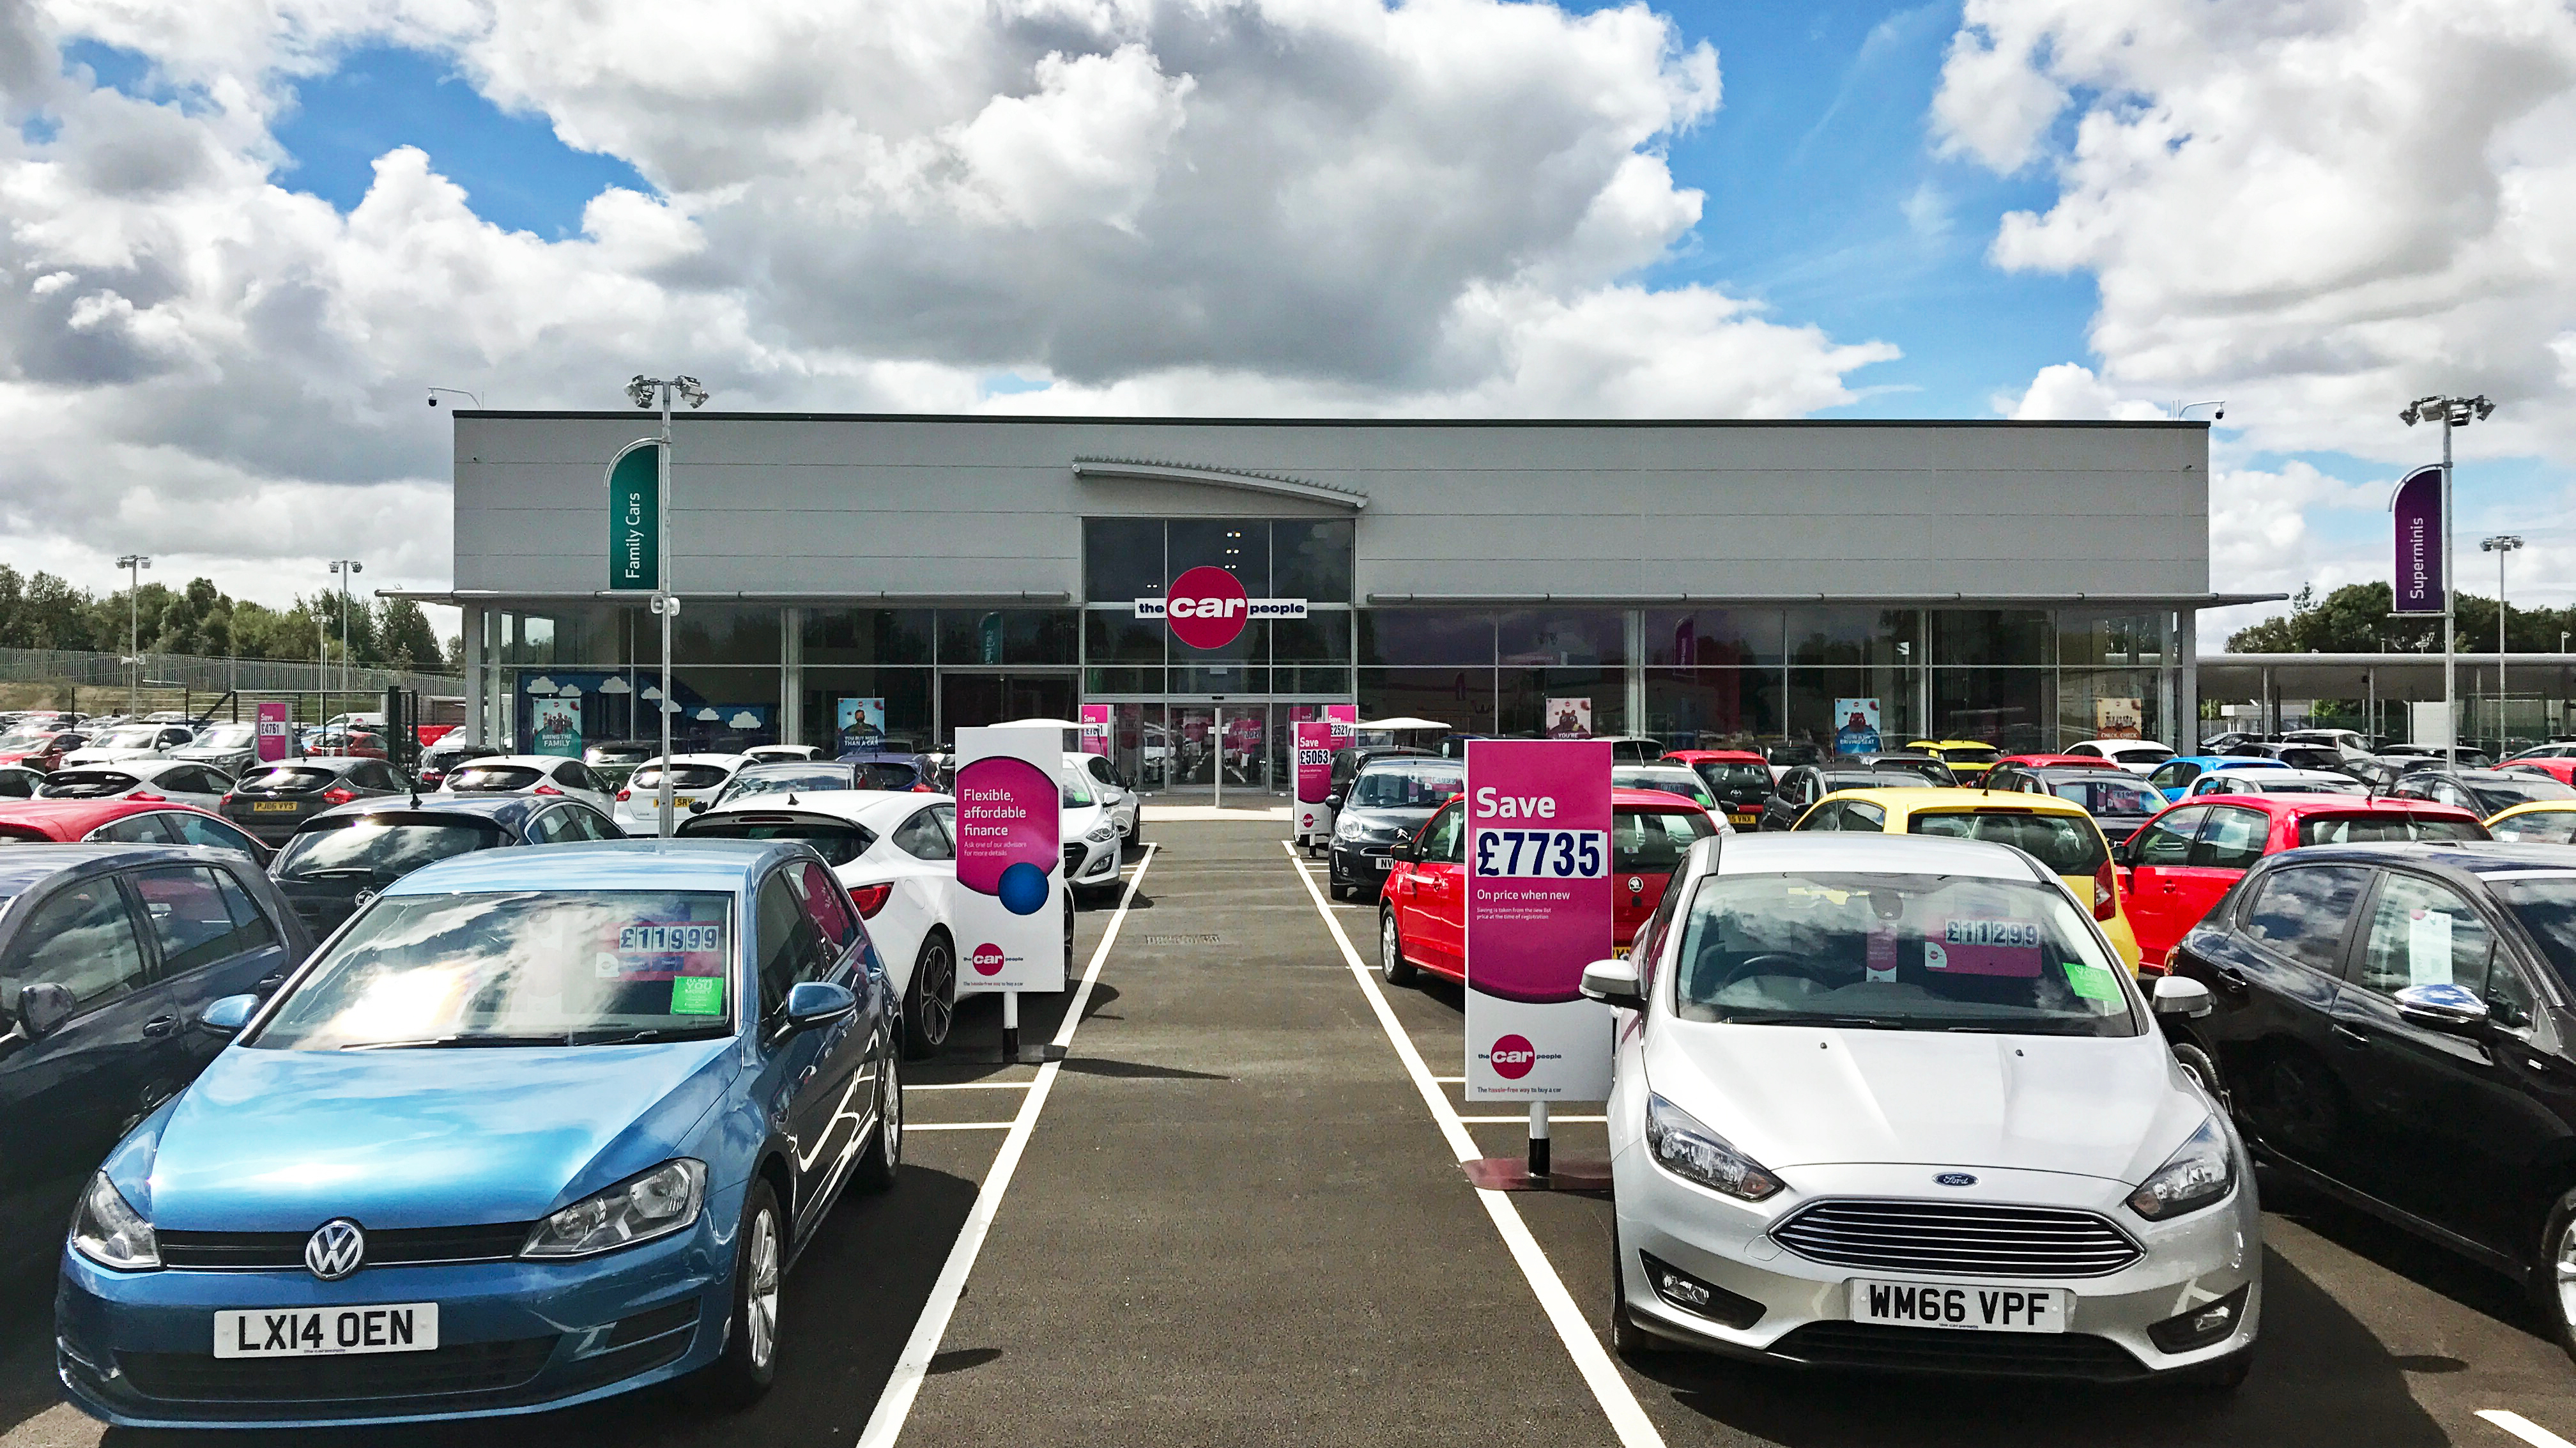 Used Cars Dealerships >> The Car People, Sheffield - PDR Construction